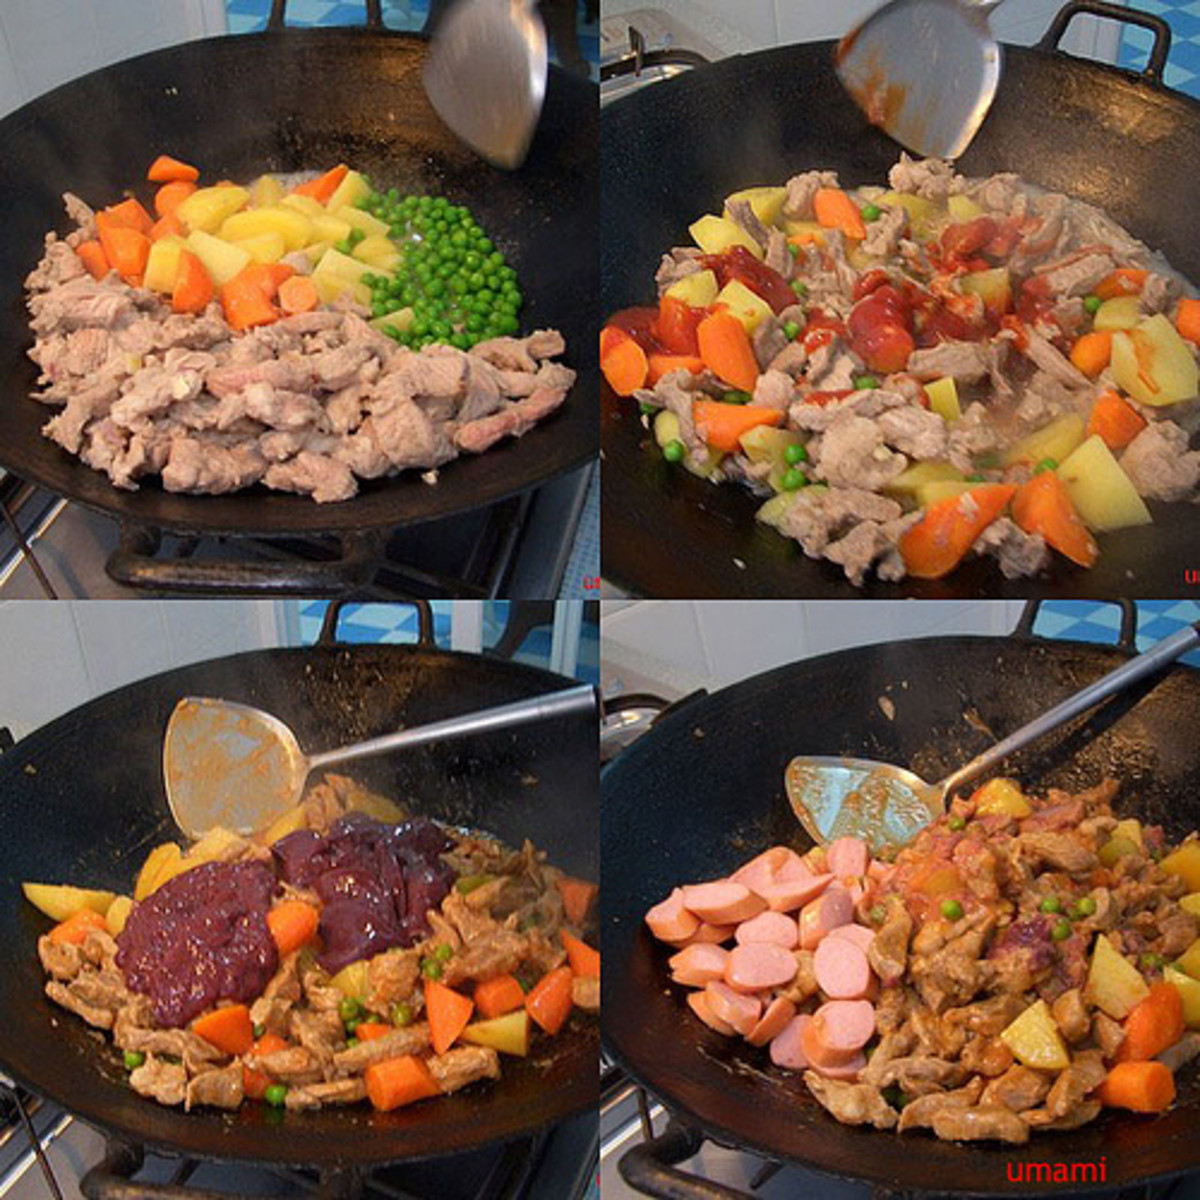 'Menudo' - Pork Meat and Pork Liver with Vegetables (Photo courtesy by umami from Flickr)